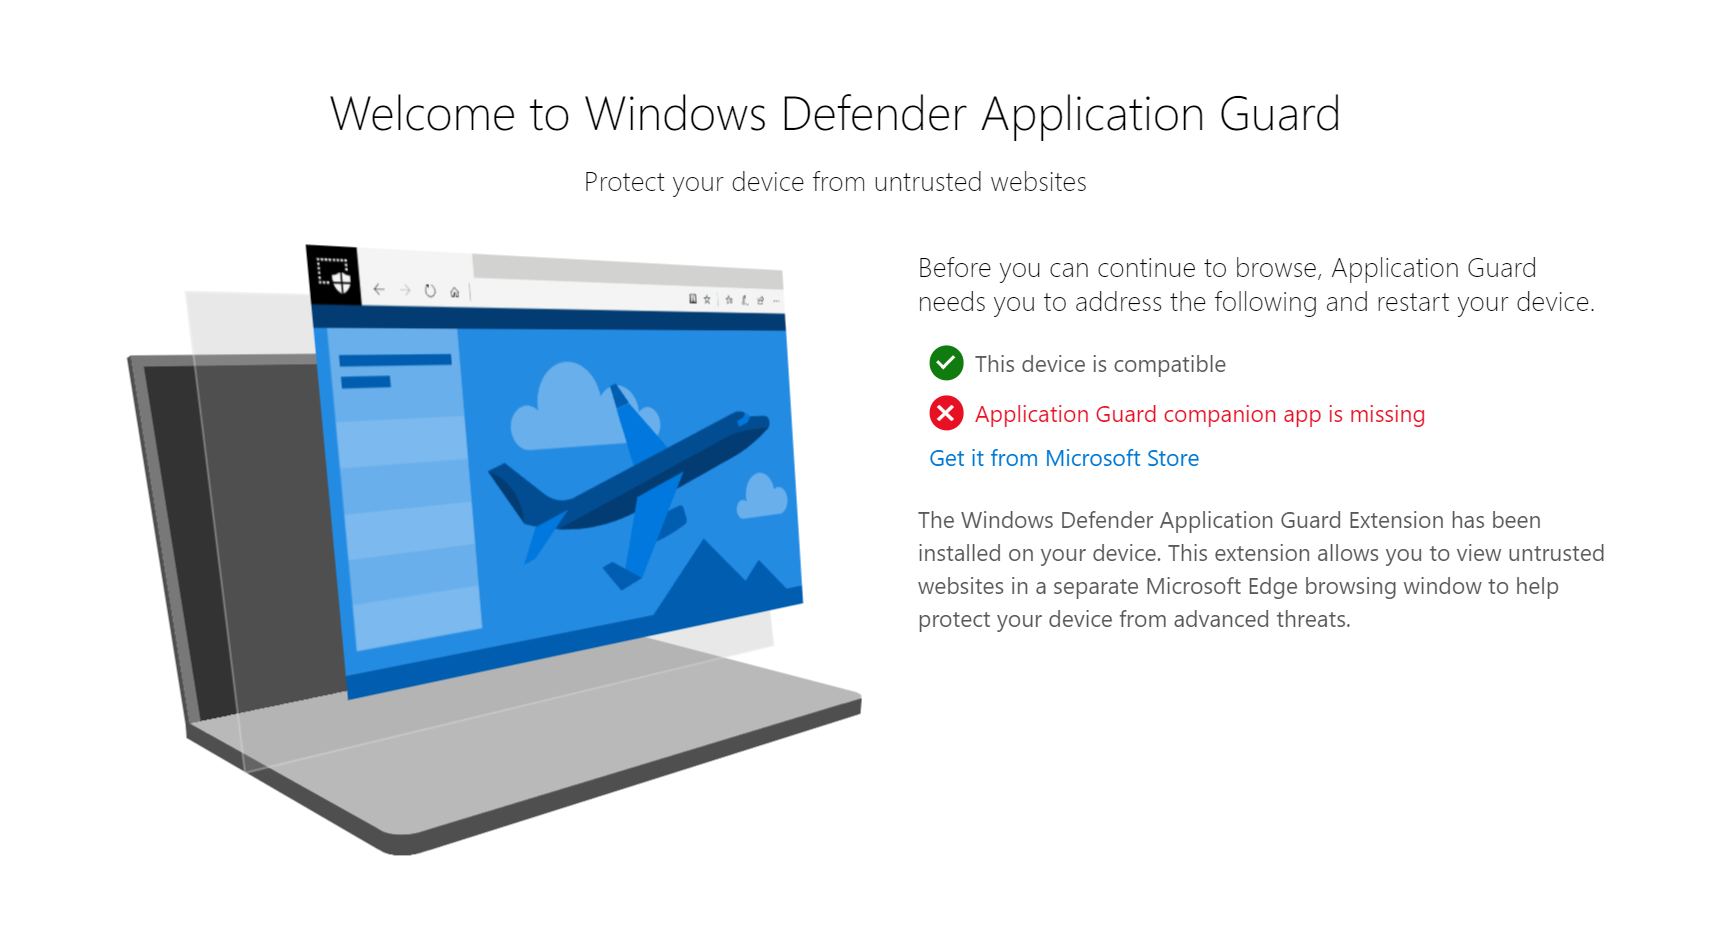 Welcome to Windows Defender Application Guard.